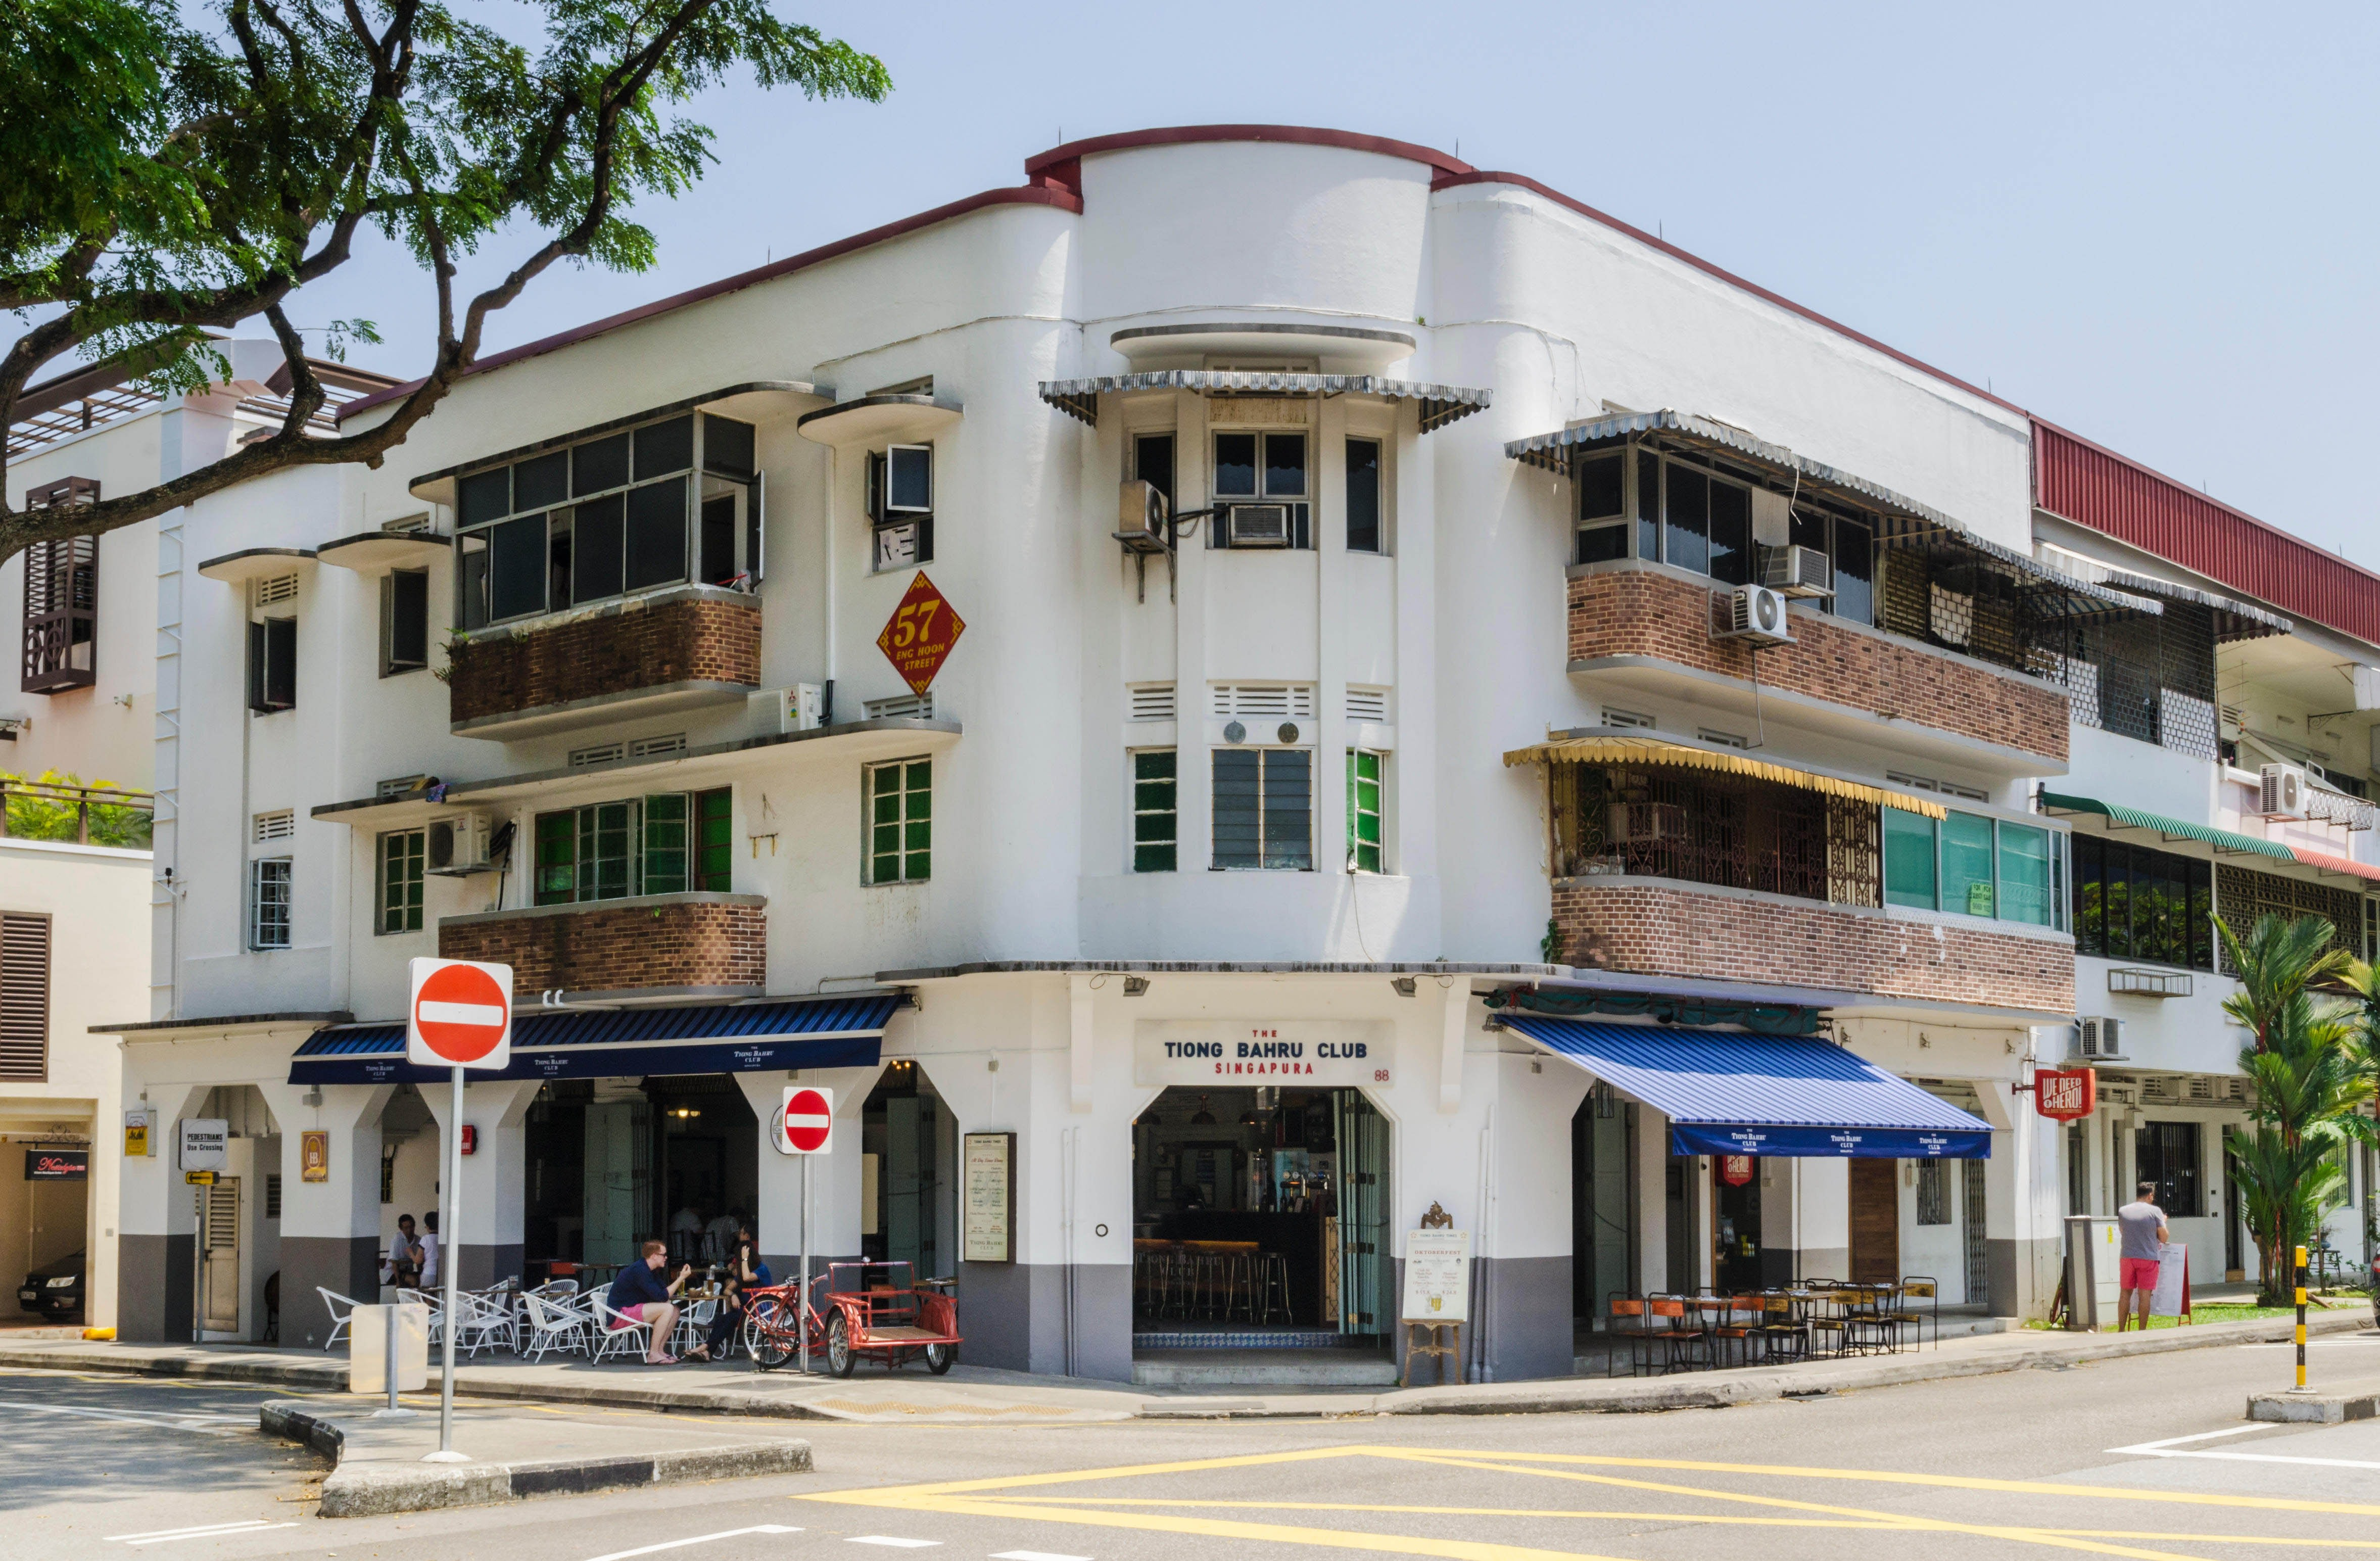 The Top 10 Things To Do in Tiong Bahru, Singapore